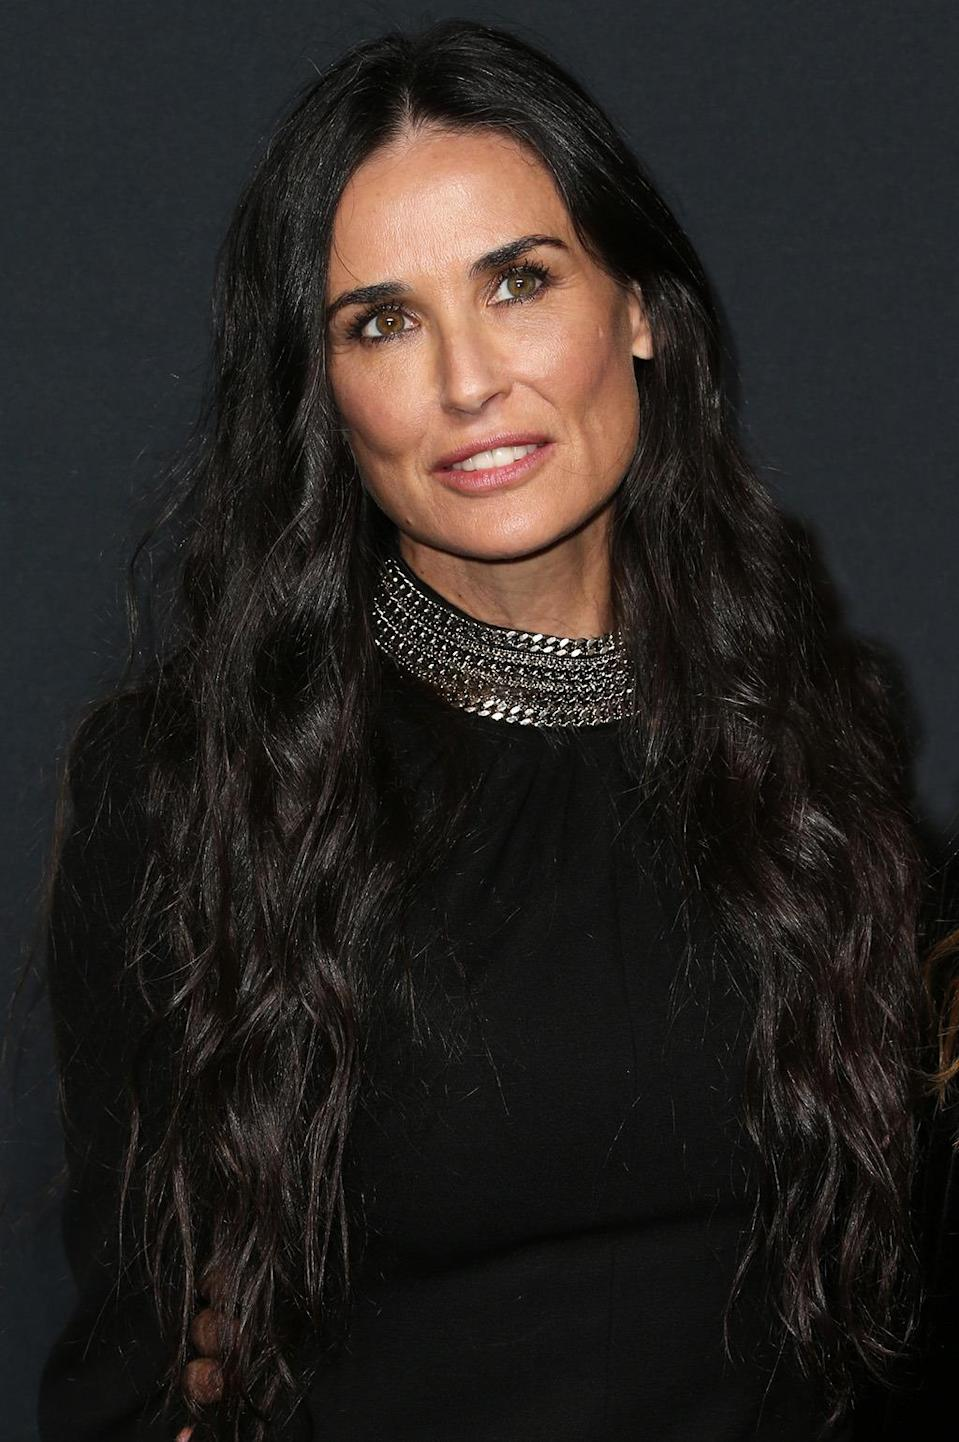 """<p><b>Demi Moore</b></p><p>Putting leeches on your skin is not for the squeamish, but for Demi Moore, it's just another detoxifying treatment. """"I've always been somebody looking for the cutting edge of things that are for optimizing your health and healing, so just a week ago I was in Austria doing a cleanse and part of the treatment was leech therapy,"""" <a href=""""http://www.today.com/id/23800824/ns/today-today_entertainment/t/demi-moore-turns-leeches-good-health/#.VxTTIBJ97Uo"""" rel=""""nofollow noopener"""" target=""""_blank"""" data-ylk=""""slk:she told David Letterman"""" class=""""link rapid-noclick-resp"""">she told David Letterman</a> on <i>The Late Show With David Letterman</i>. Hard pass.<br></p><p><br></p>"""